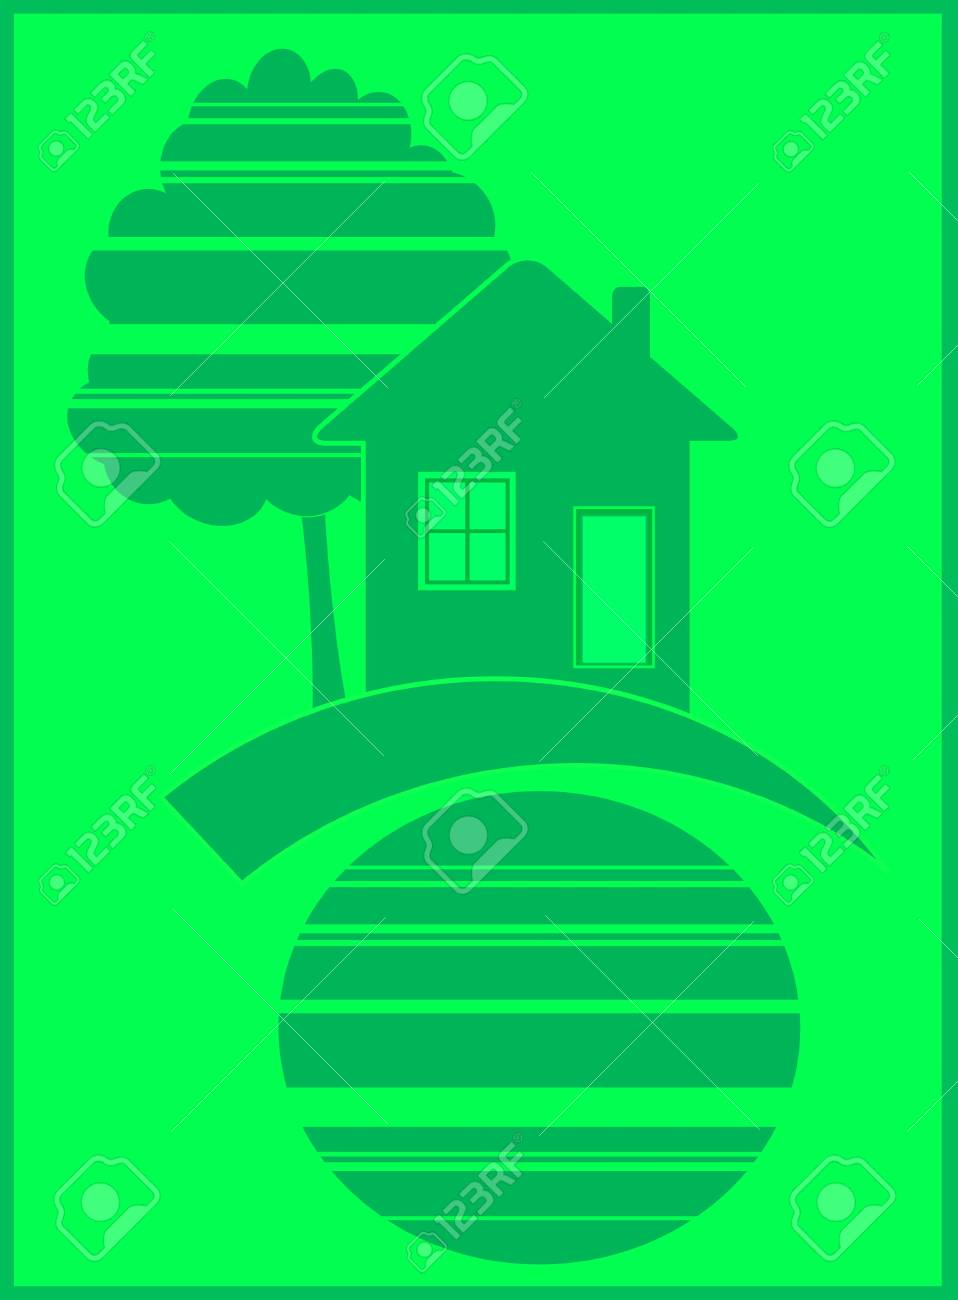 green symbol of eco house in frame Stock Vector - 12333661